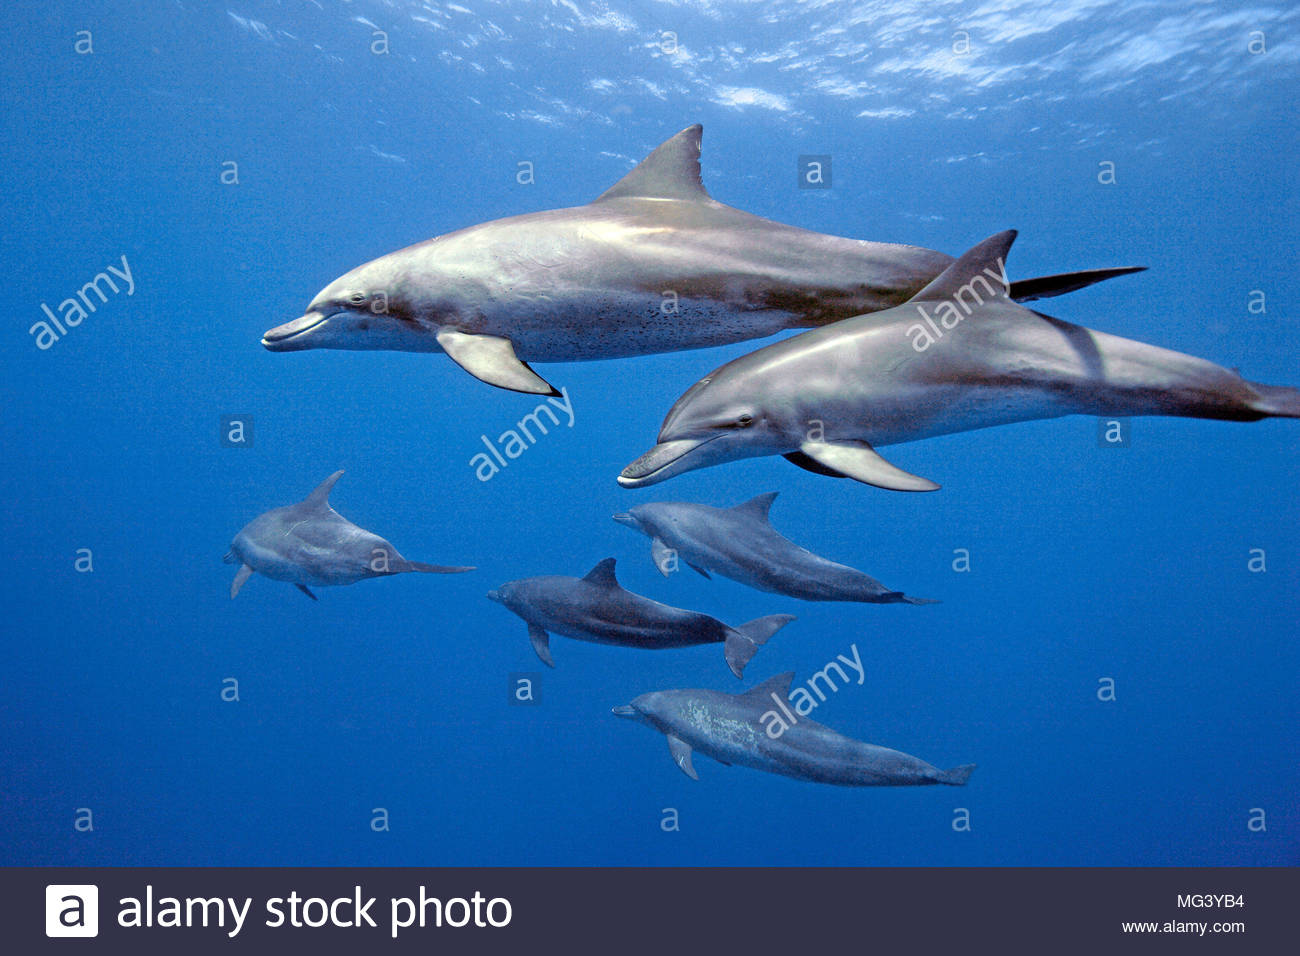 Indo-Pacific bottlenose dolphin (Tursiops aduncus), group, Ogasawara, Japan - Stock Image